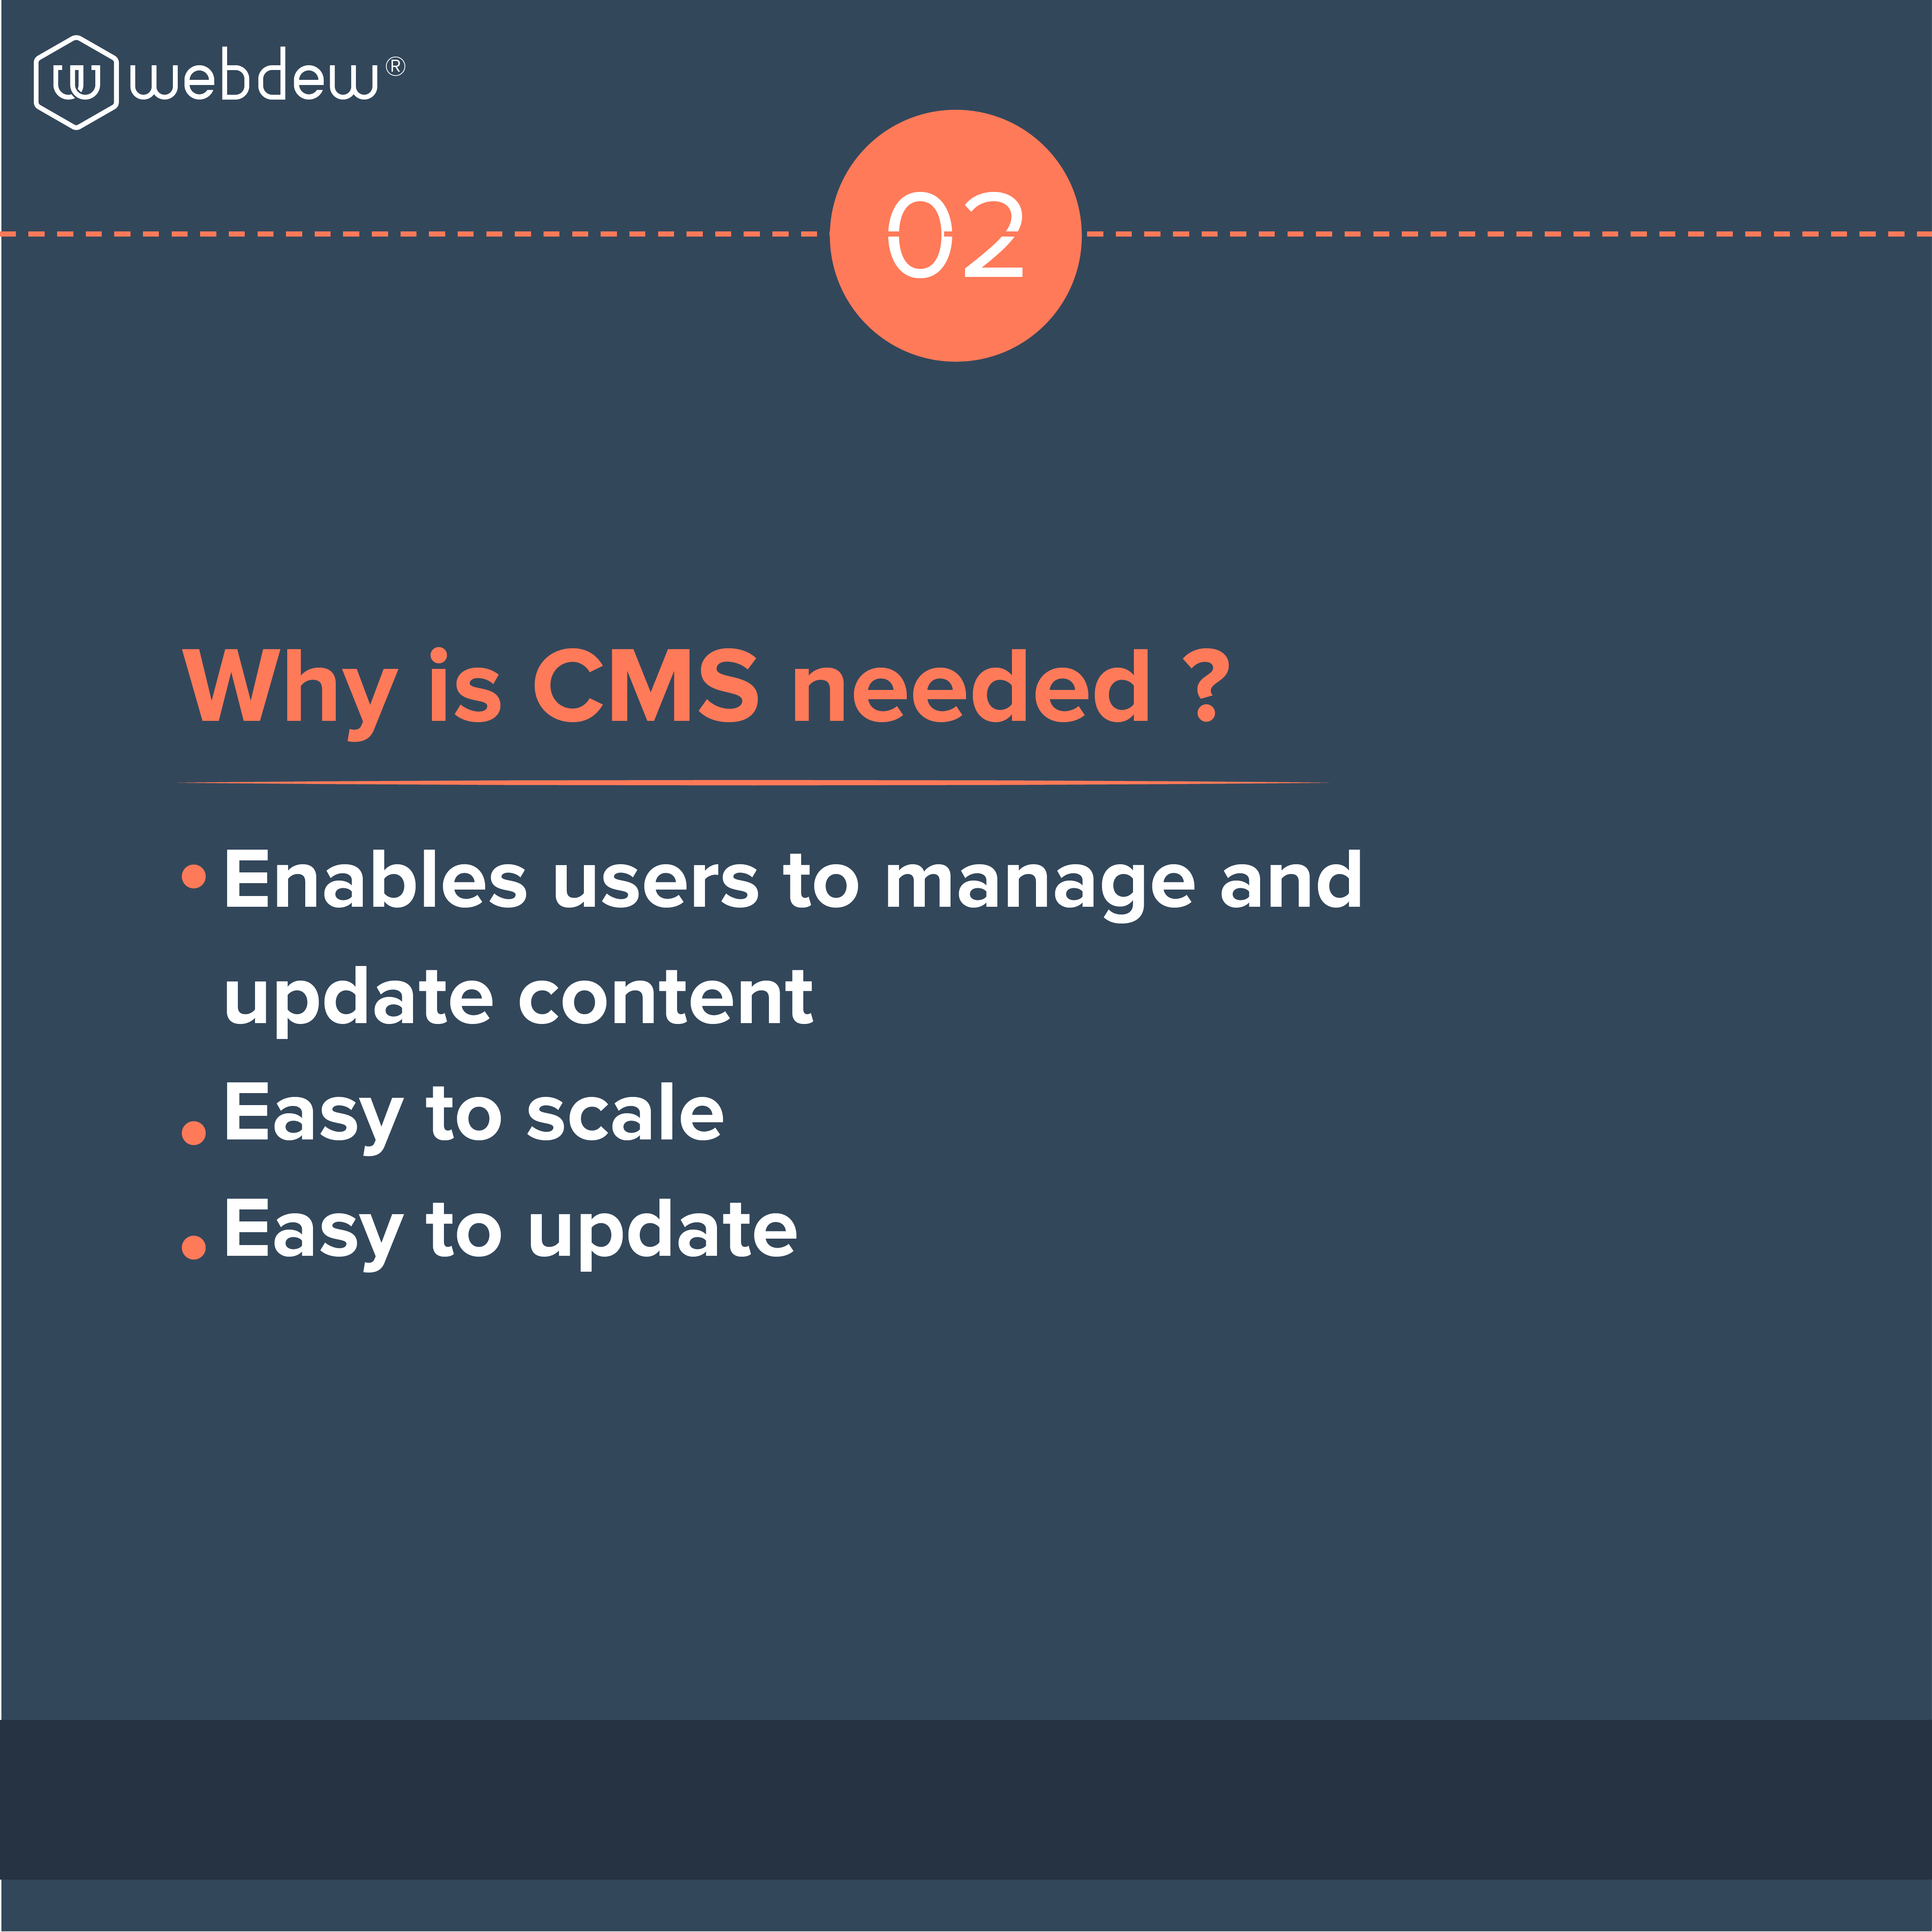 2. why is CMS needed